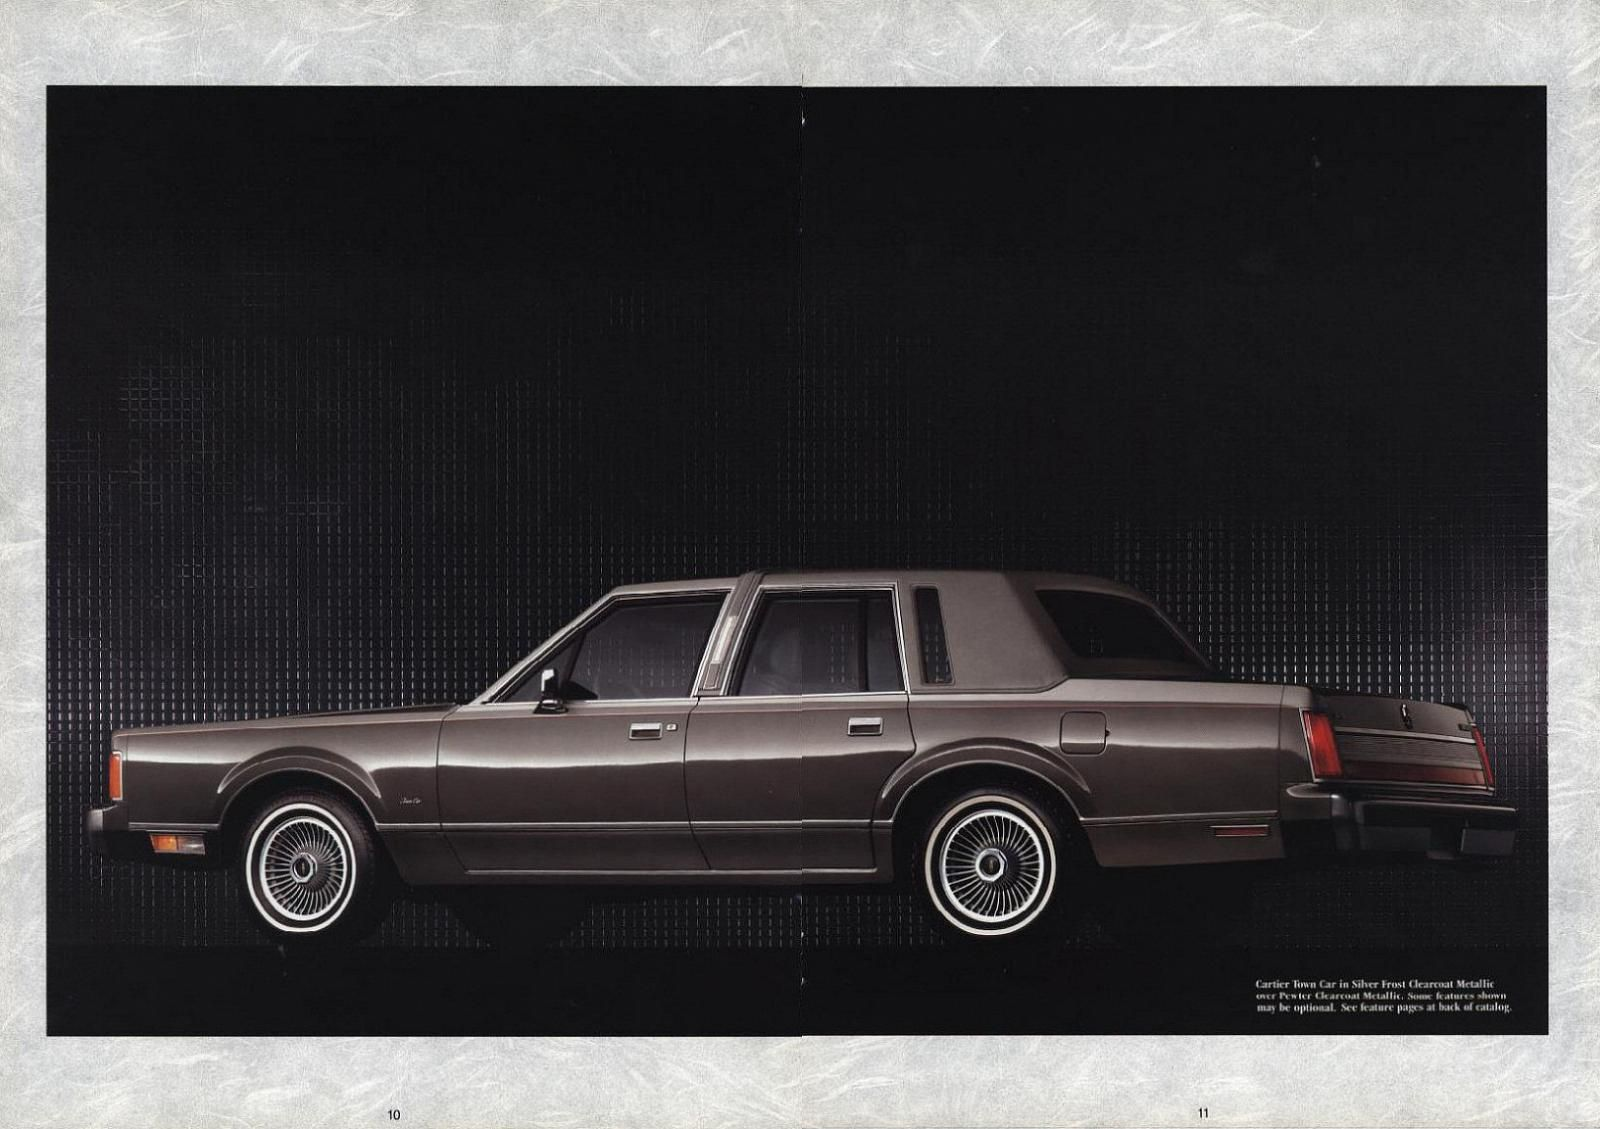 medium resolution of 1989 lincoln continental town car models lineup